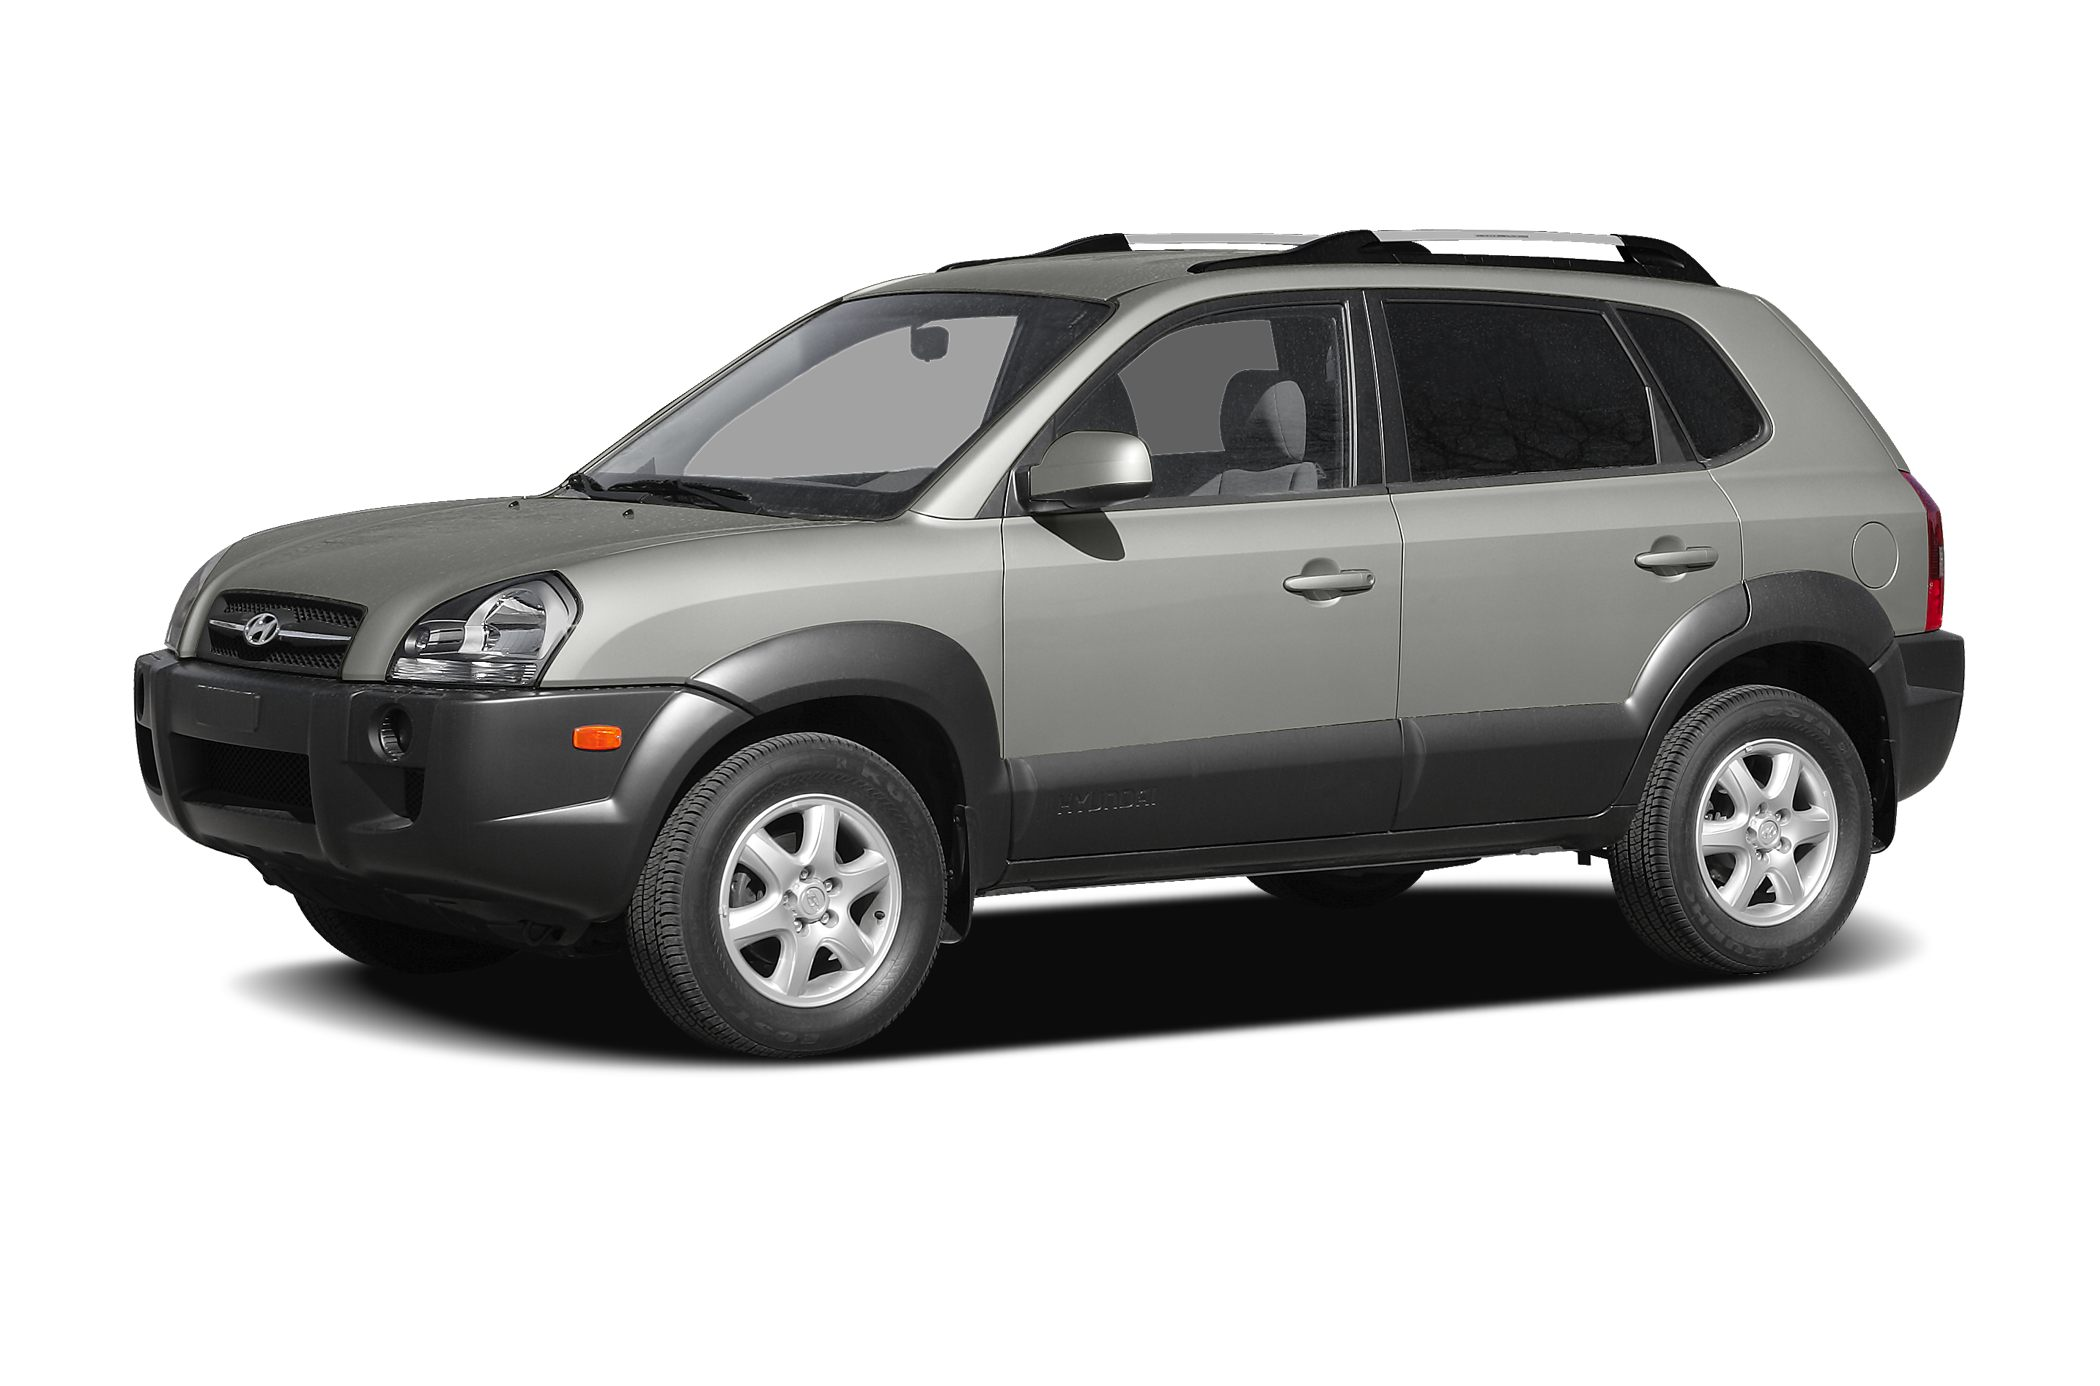 2007 Hyundai Tucson SE FREE FIRST YEAR MAINTENANCE and NO ACCIDENT HISTORY ON CARFAX 27L V